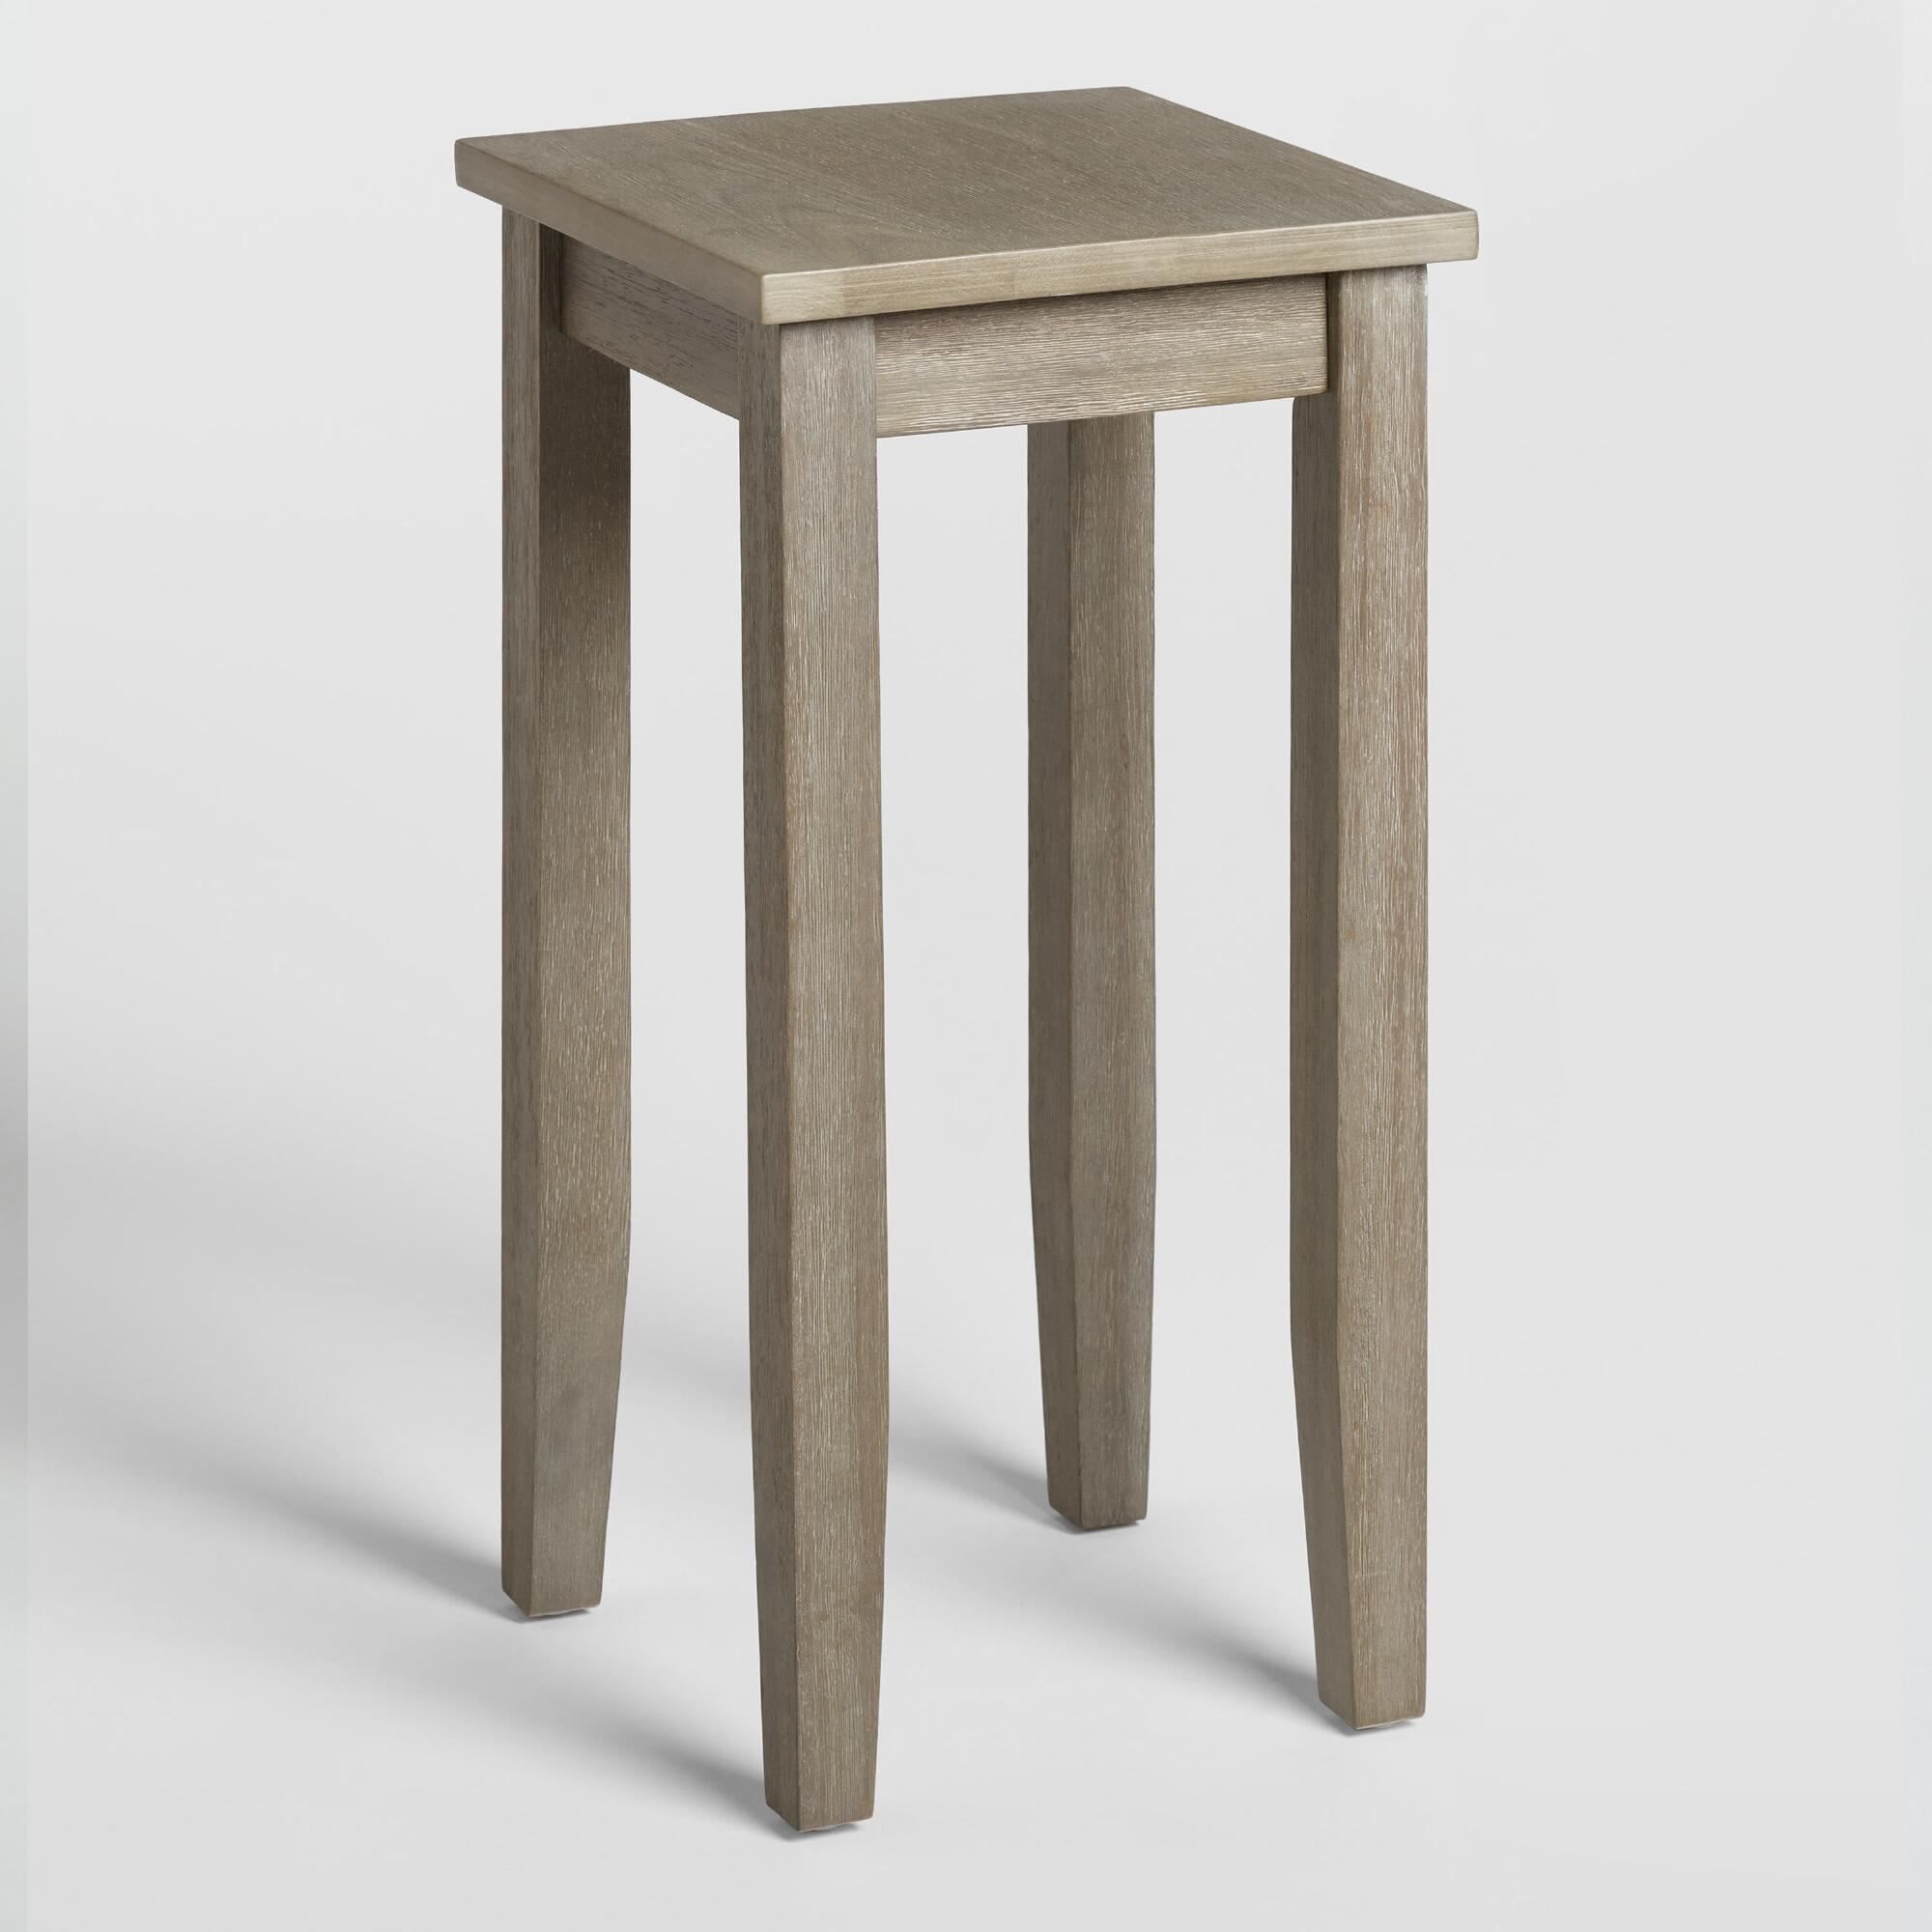 small chloe accent table world market iipsrv fcgi plant stand gray mahogany white cube coffee college dorm black bedroom end tables nic bench metal legs coastal ideas outdoor